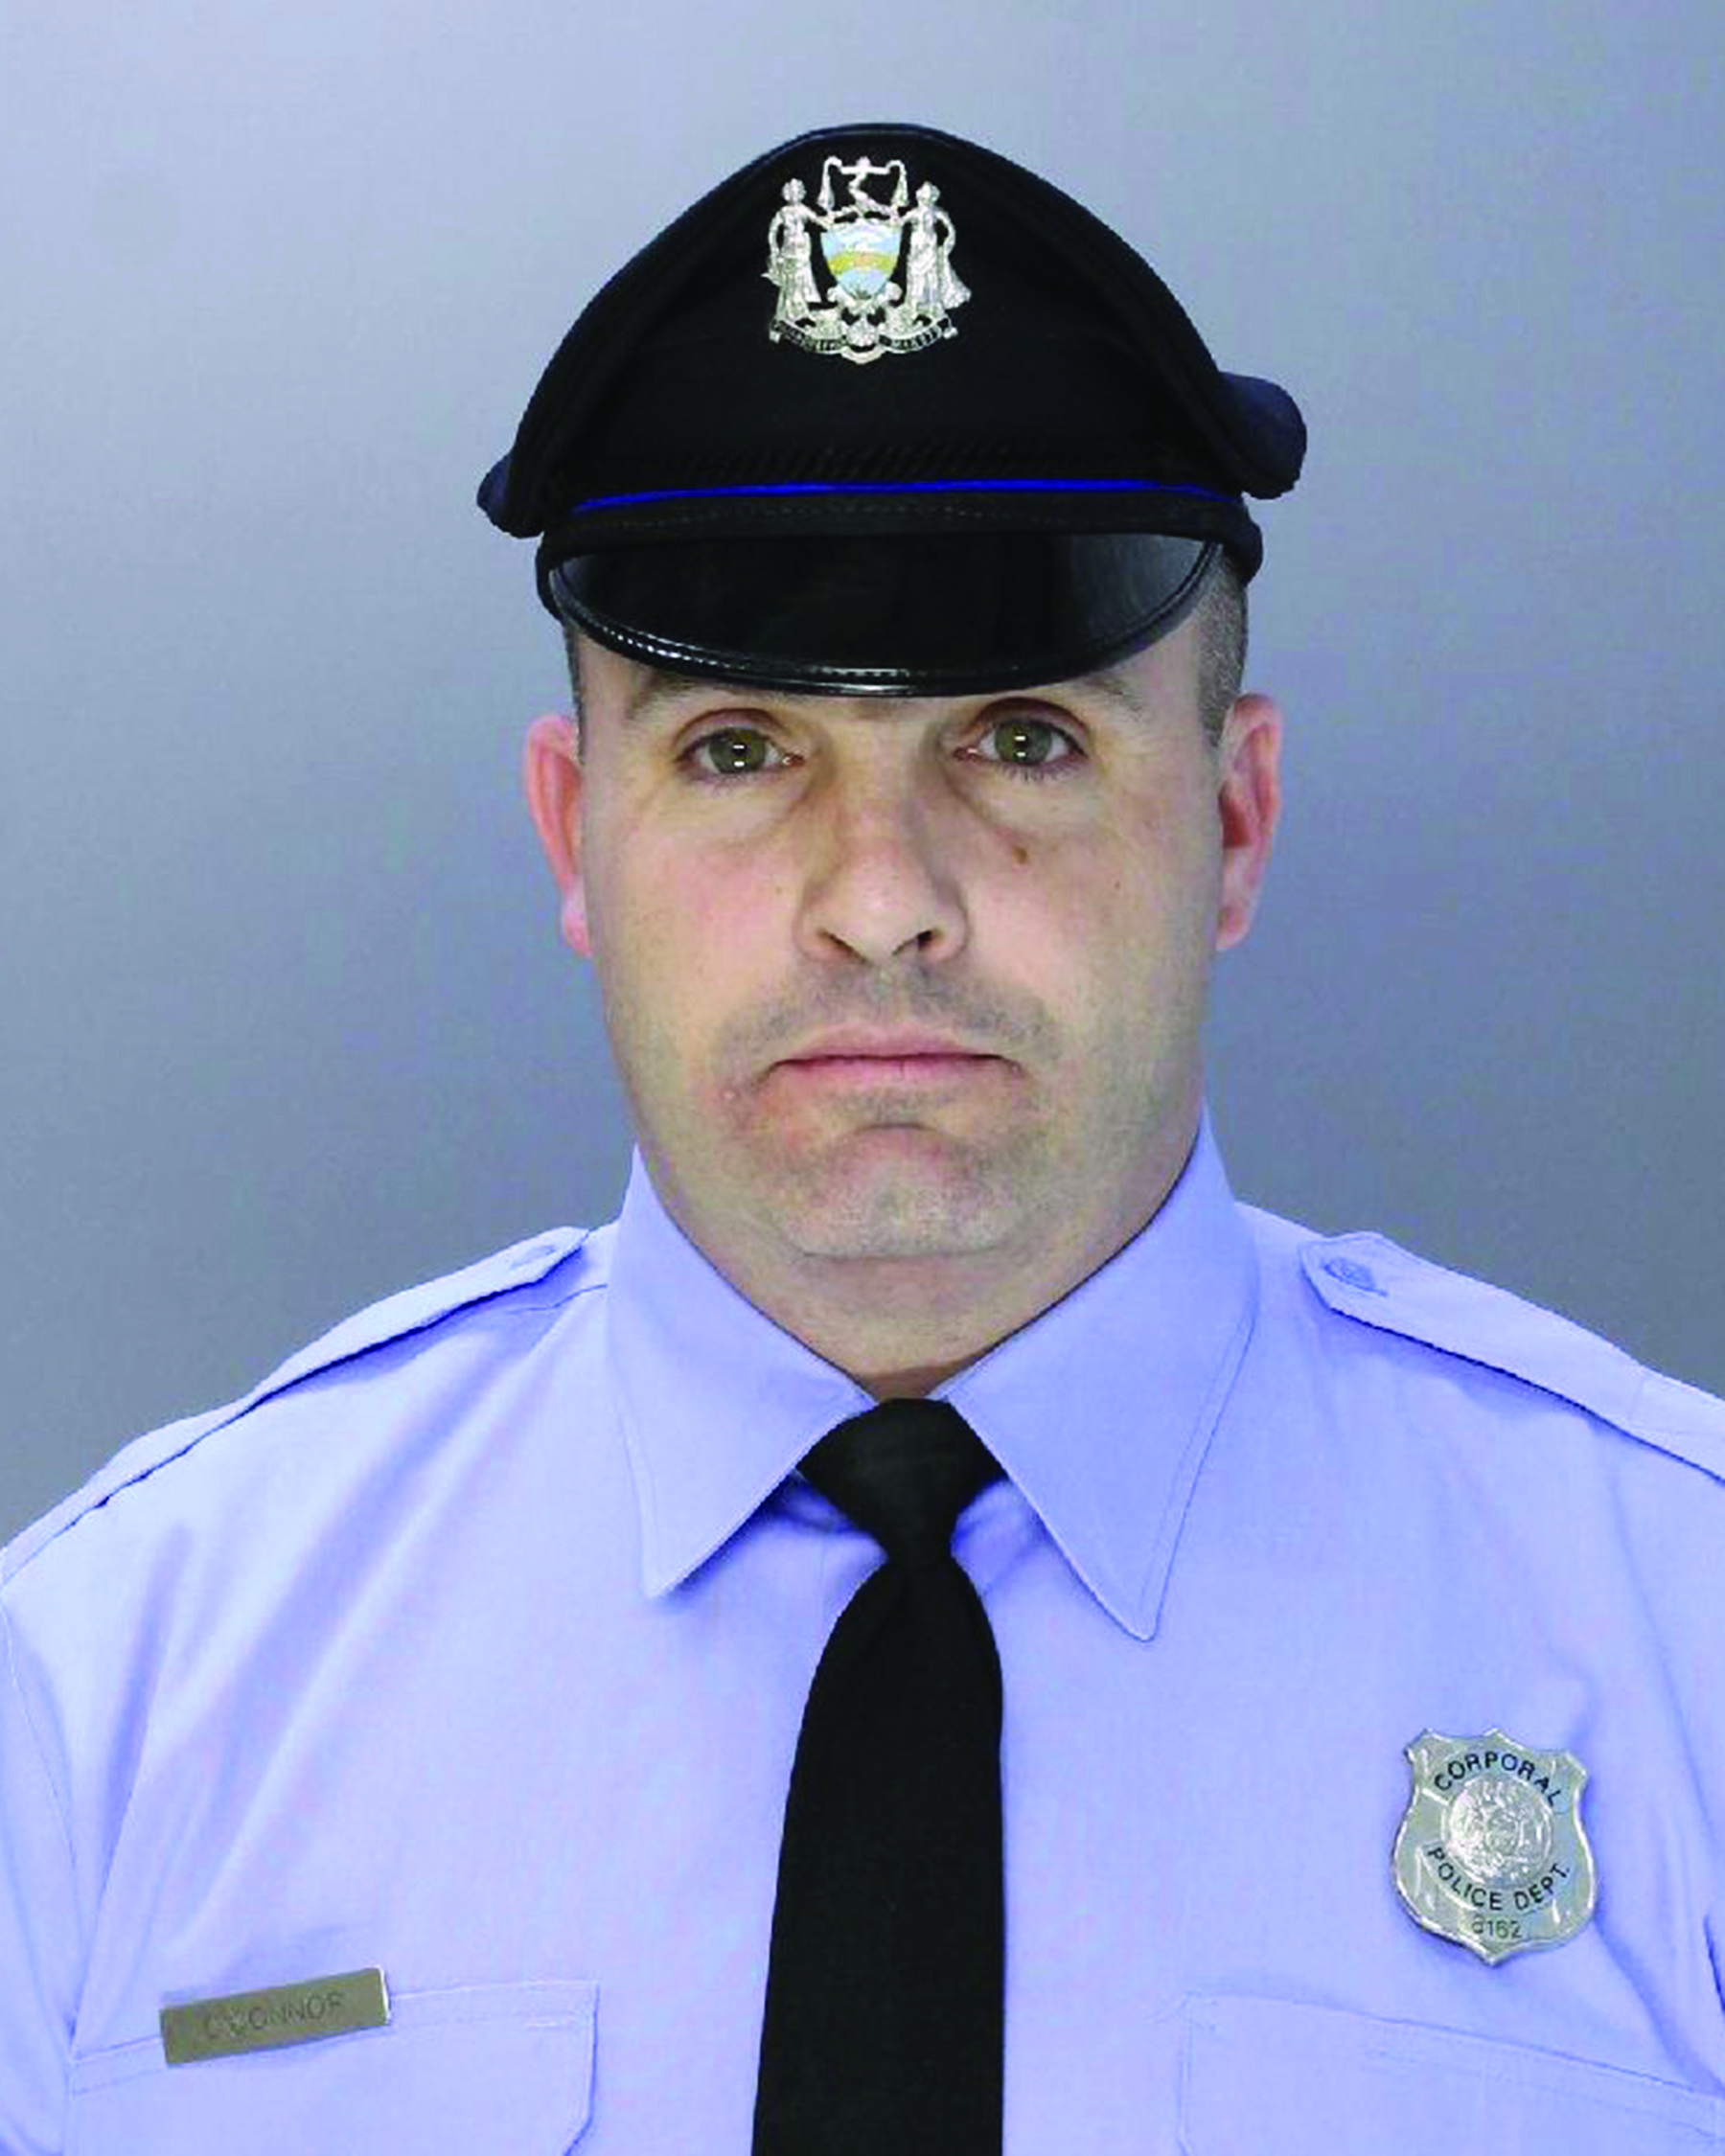 Sergeant James R. O'Connor, IV | Philadelphia Police Department, Pennsylvania